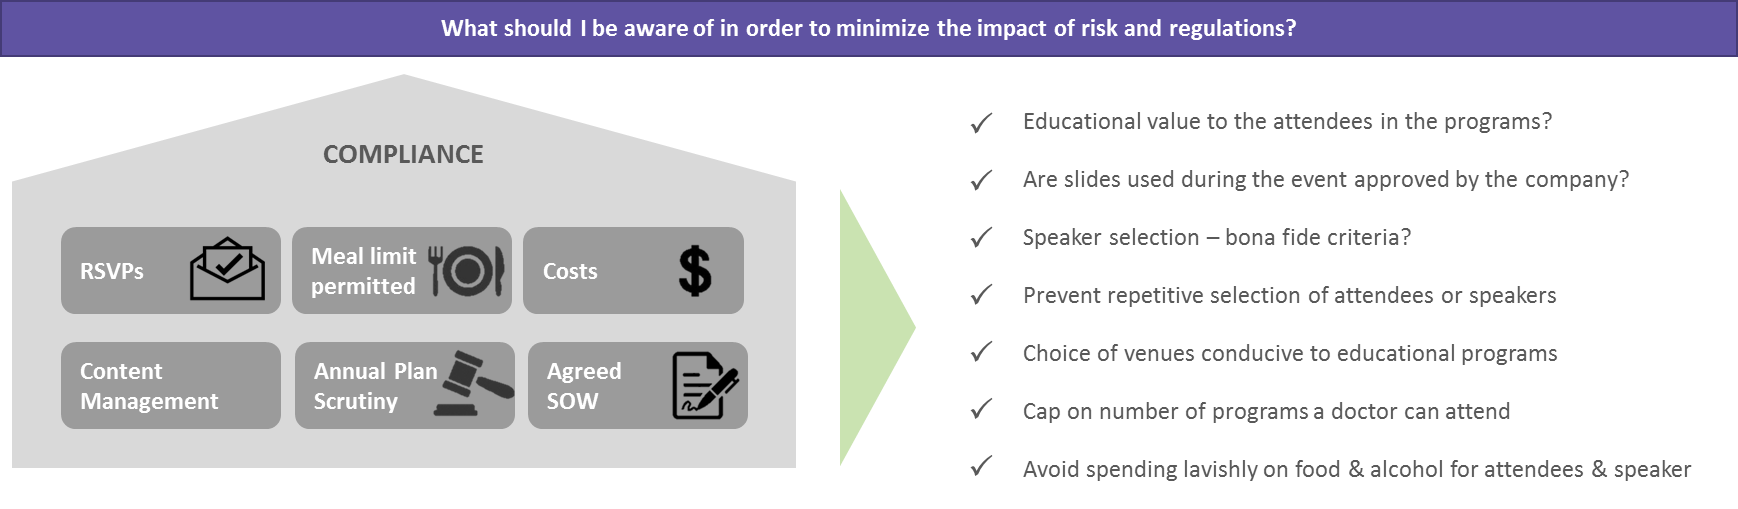 minimise-the-impact-of-risk-and-regulation